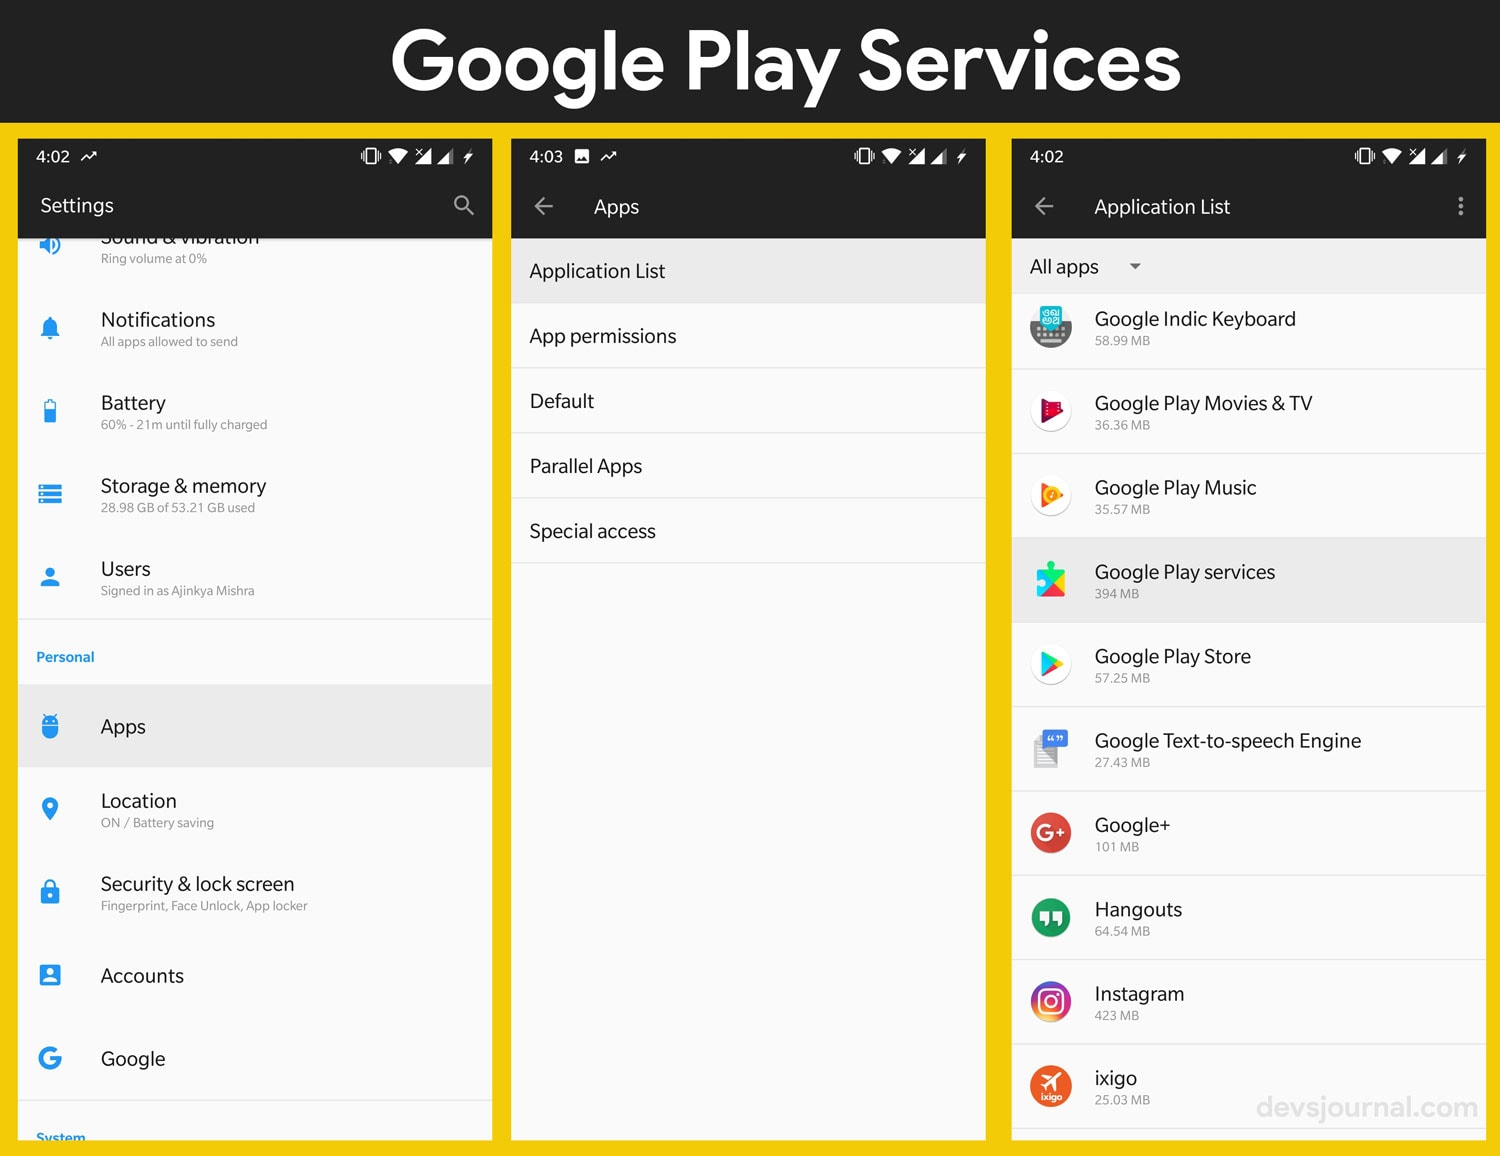 Find Google Play Store and Play Services in Android Settings